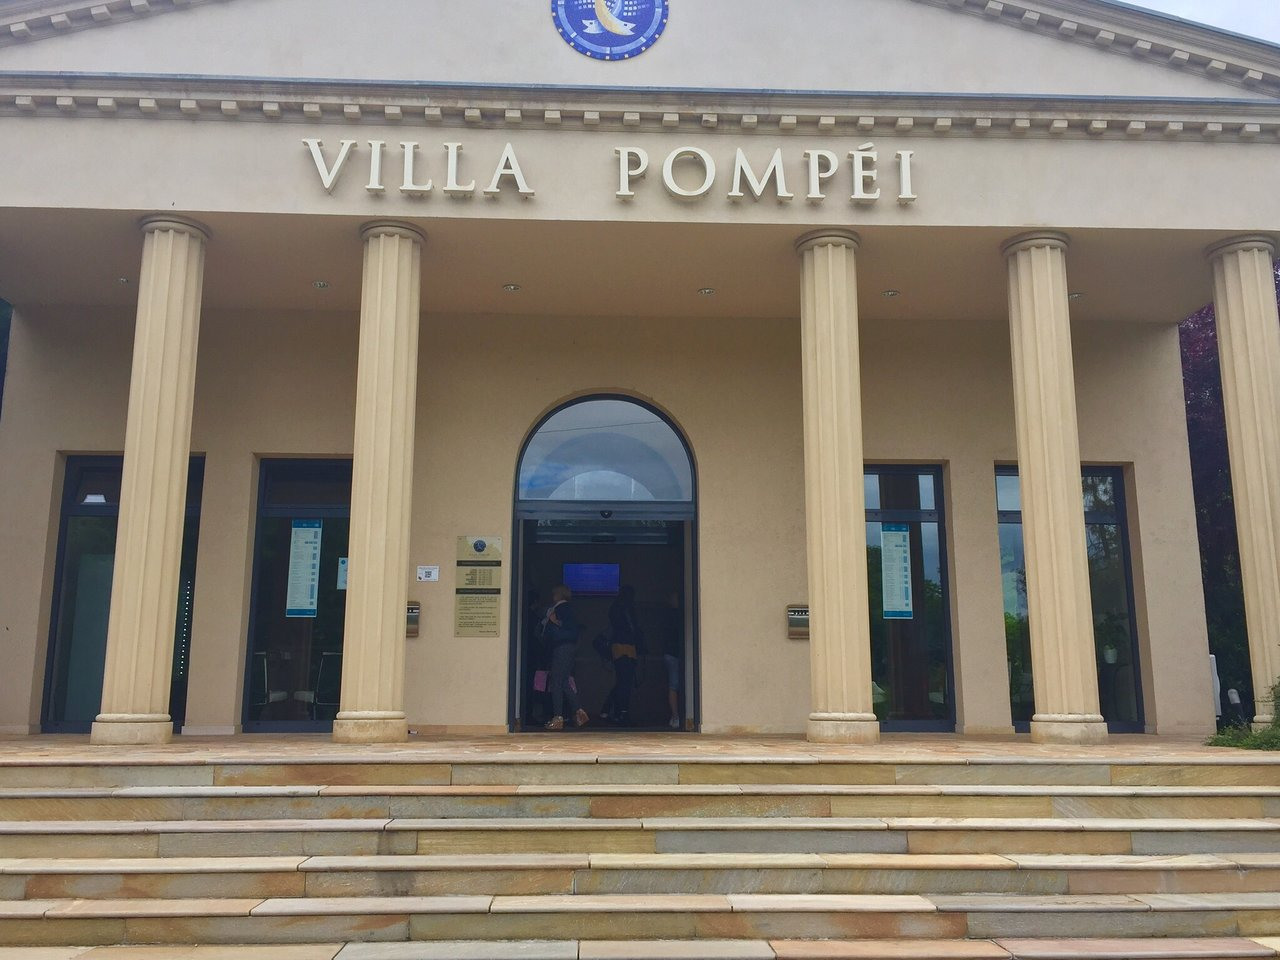 Une Heure Pour Soi Fameck Tarifs villa pompei (amneville) - 2020 all you need to know before